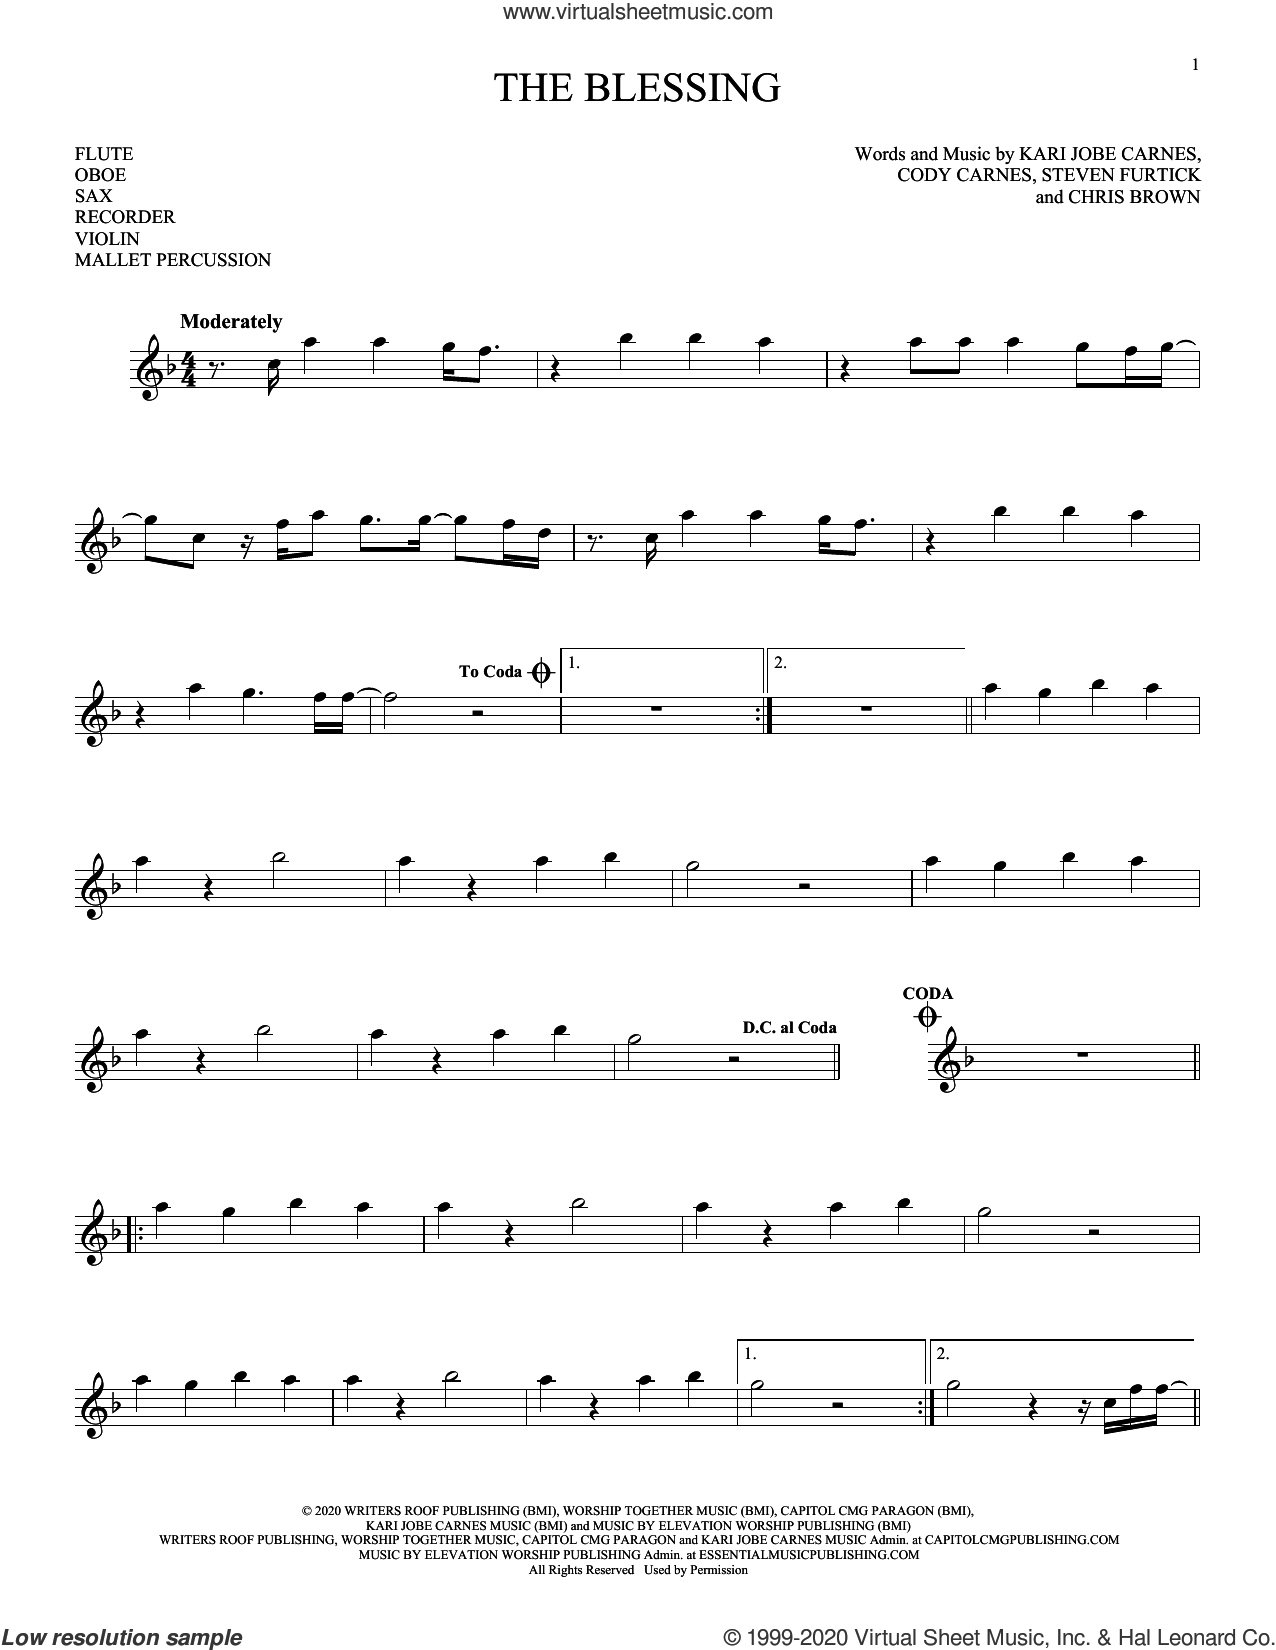 The Blessing sheet music for Solo Instrument (treble clef high) by Kari Jobe, Cody Carnes & Elevation Worship, Chris Brown, Cody Carnes, Kari Jobe Carnes and Steven Furtick, intermediate skill level